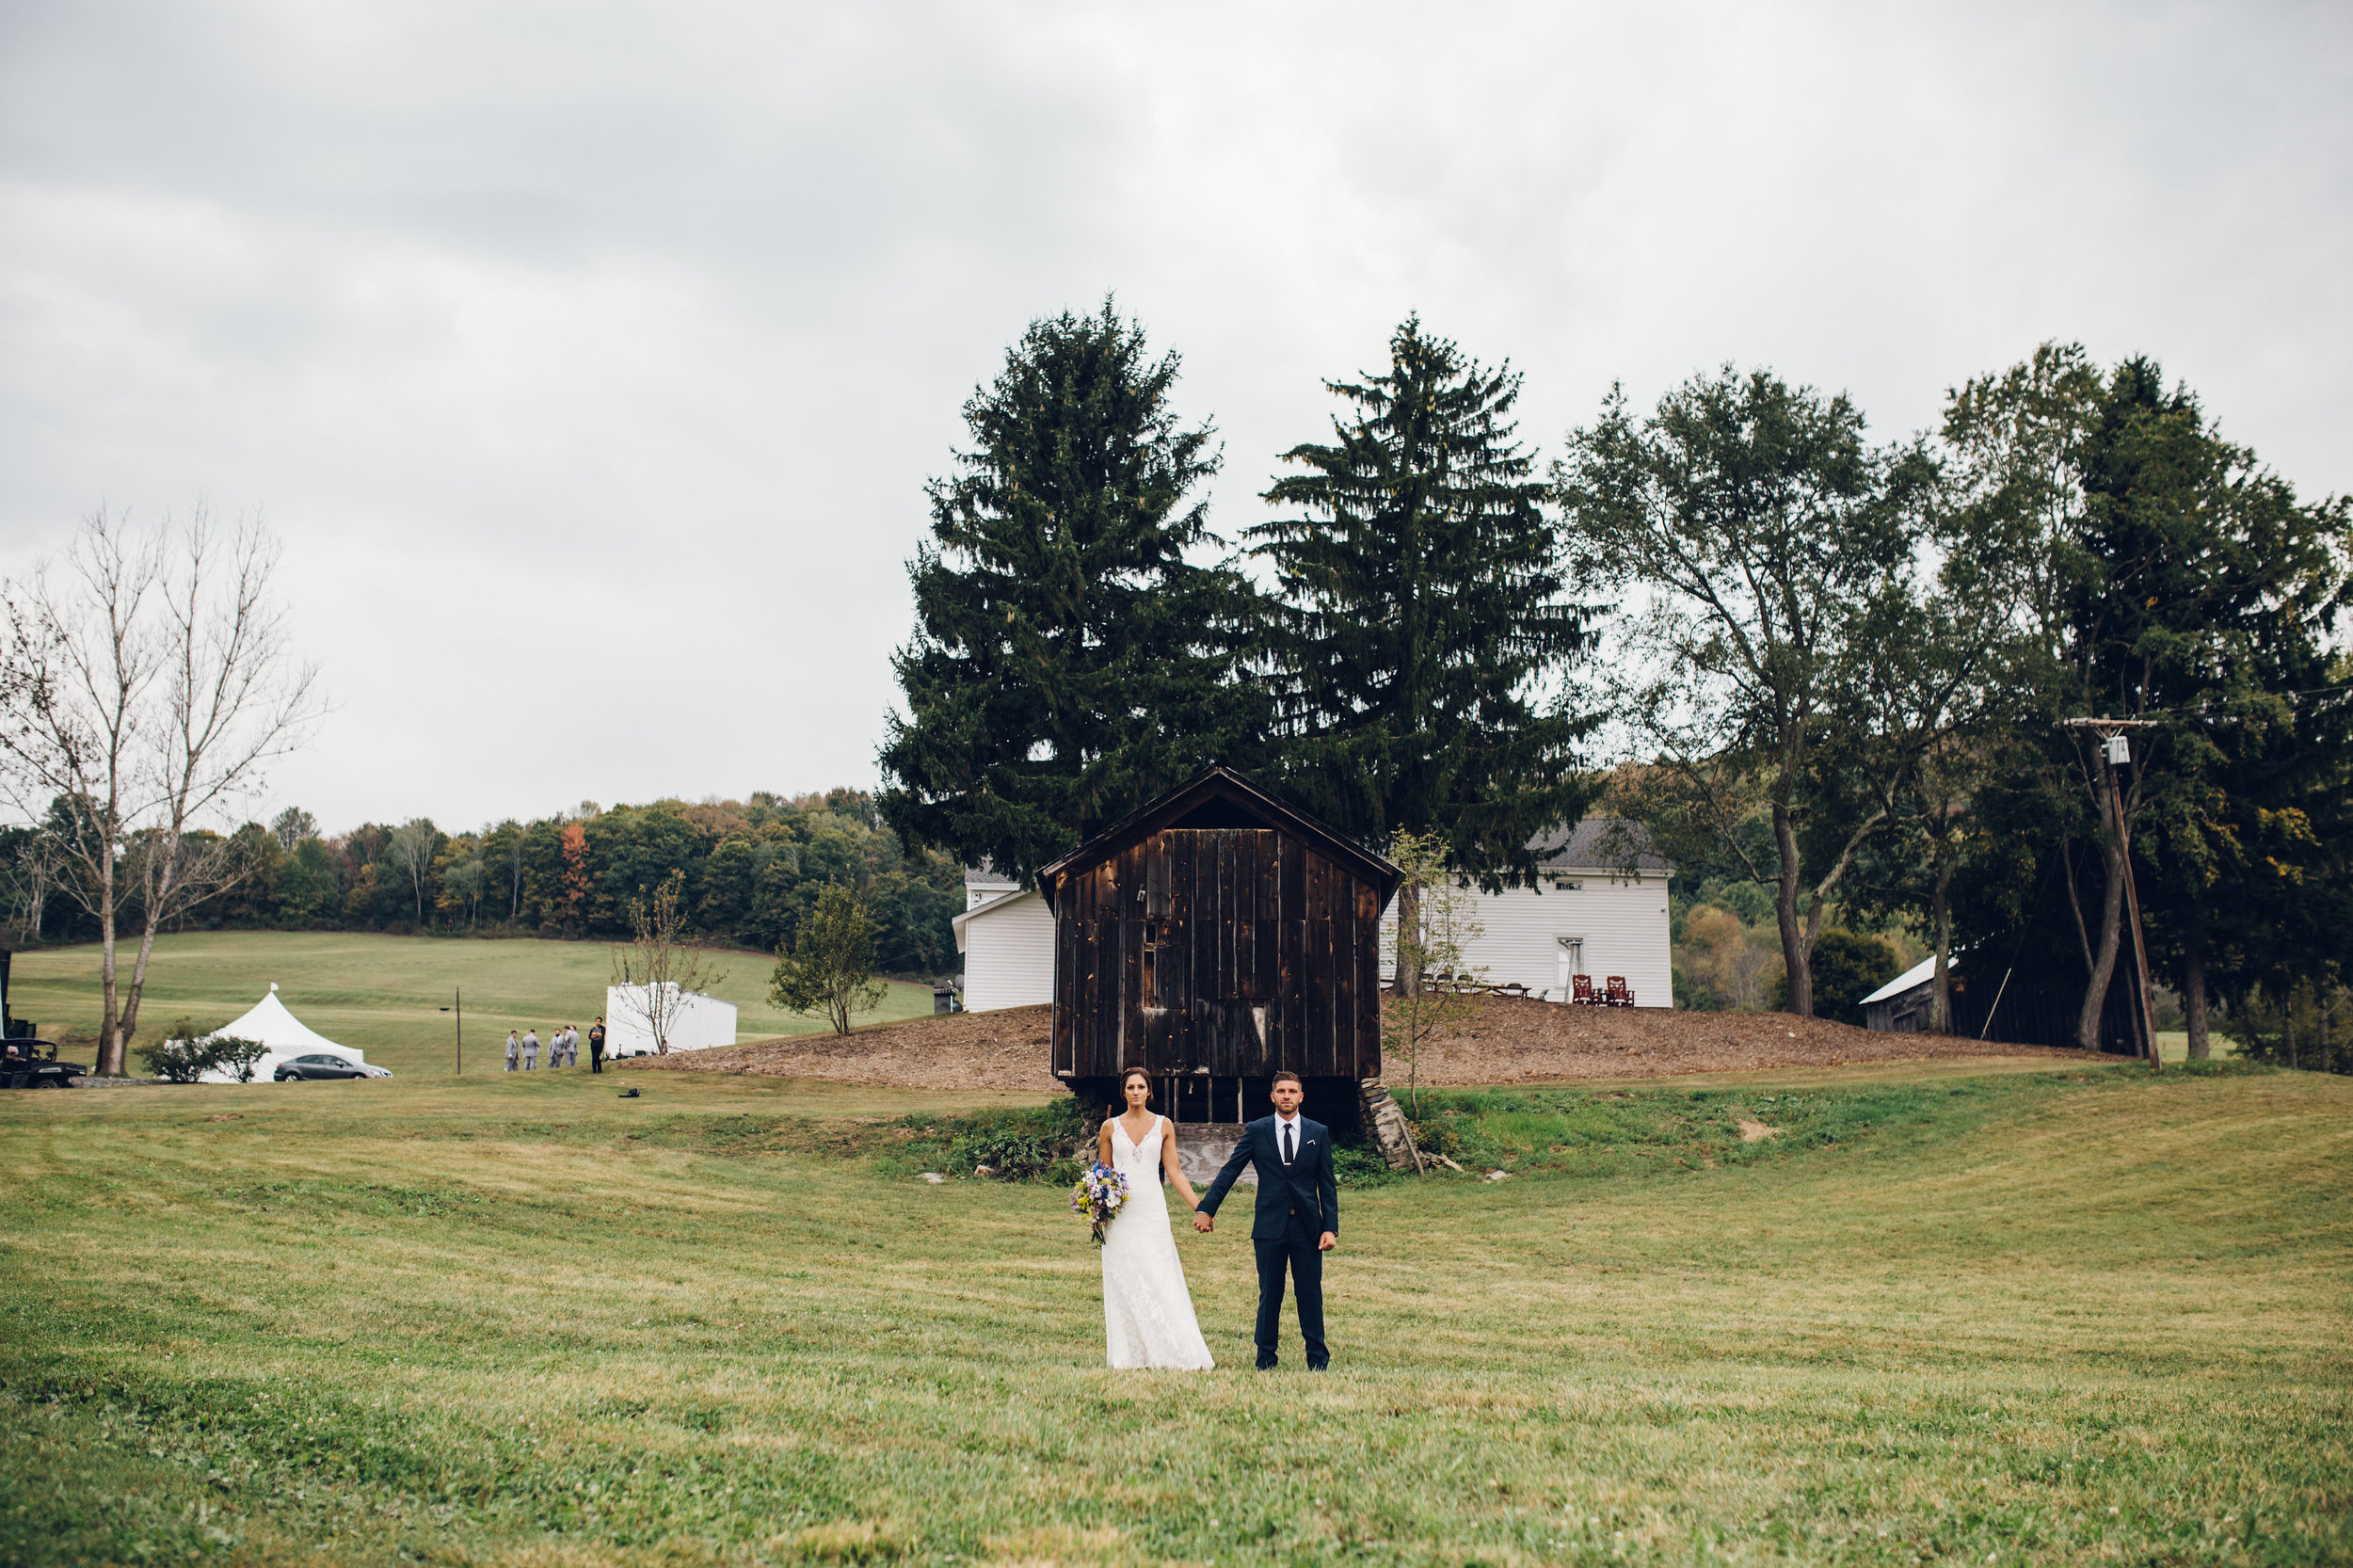 brittany-eric-upstate-diy-farm-wedding-couple-of-dudes-lawrence-braun-Hi-Res-0103.jpg